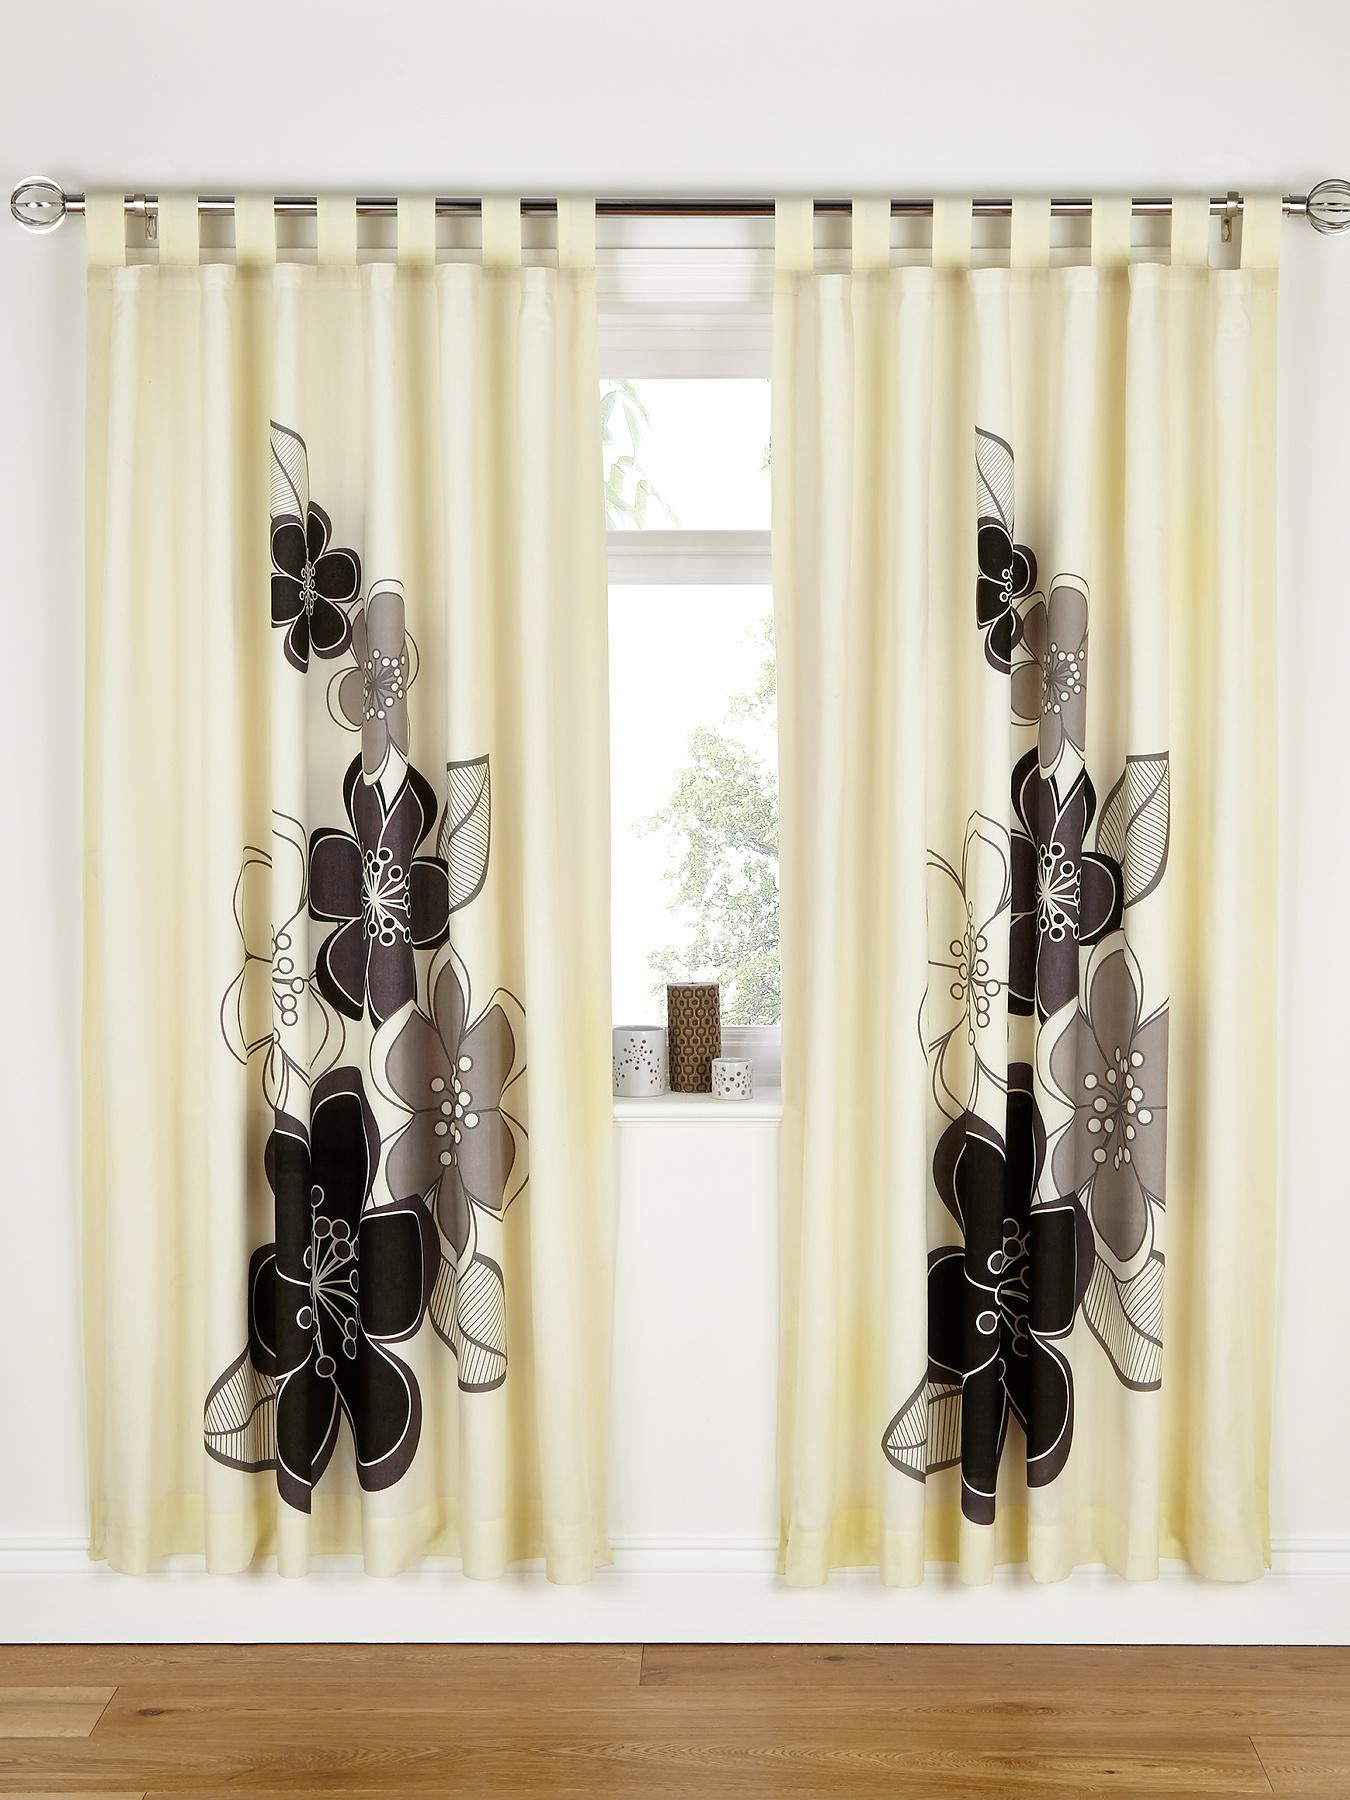 Kitchen Curtains Littlewoods Tab Slot Top Curtains Curtains Blinds Home Garden